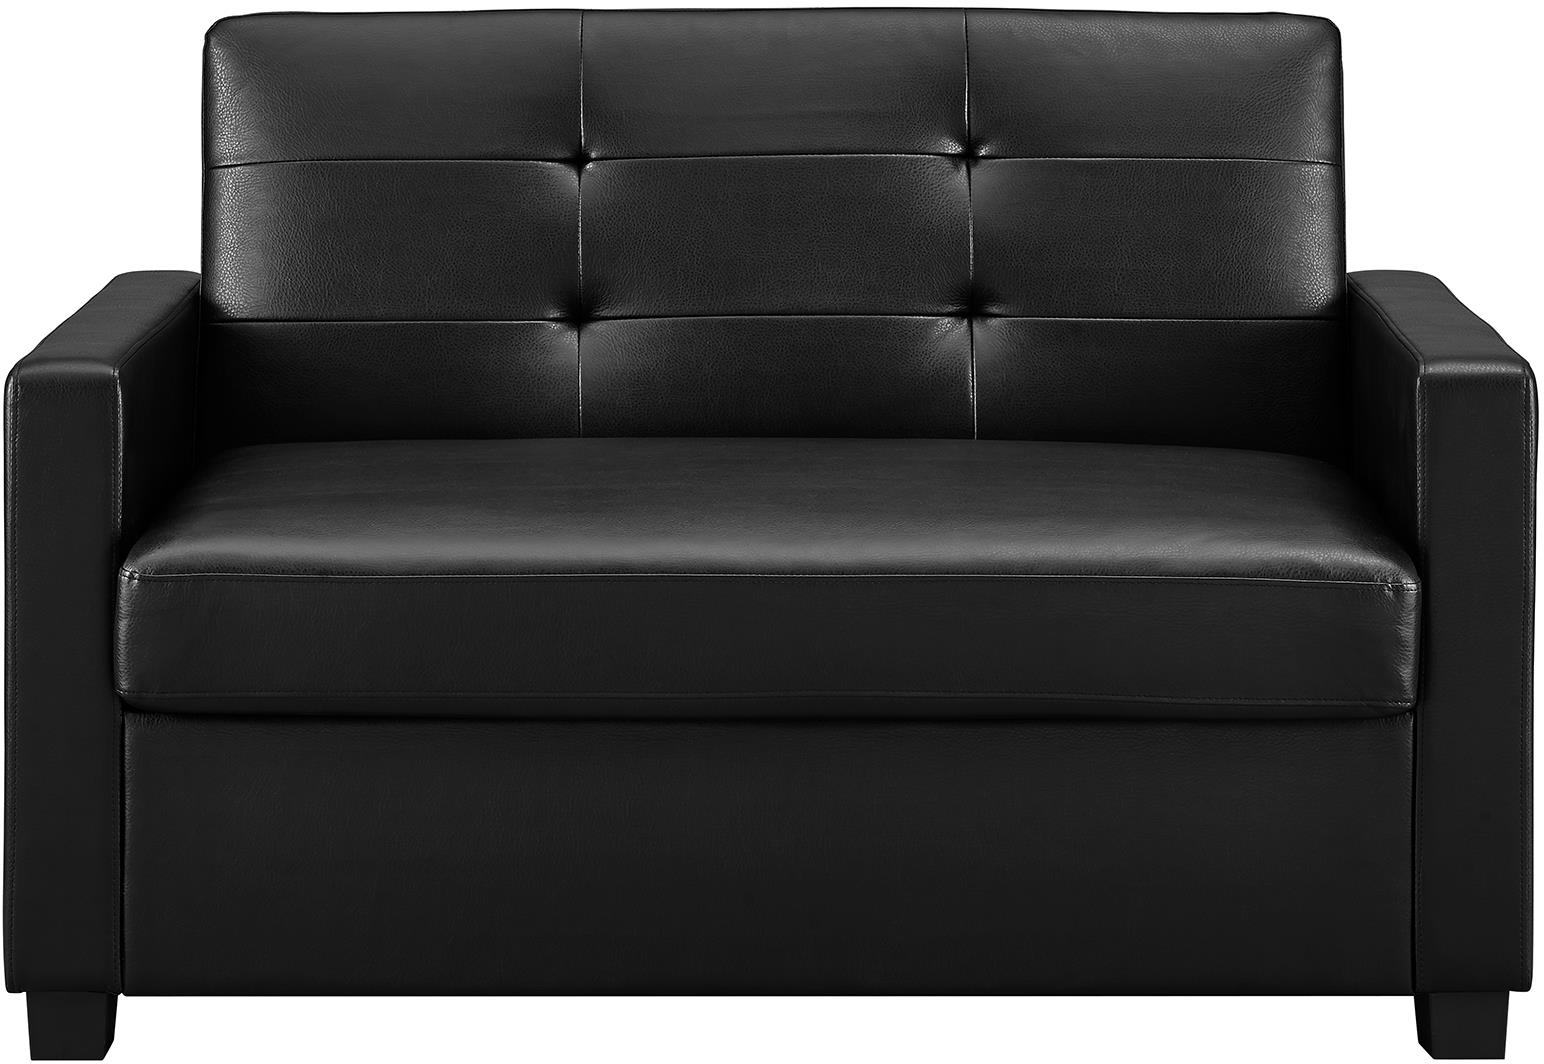 Details About Sofa Bed Sleeper Couch Twin Loveseat Black Luxury Leather Memory Foam Mattress